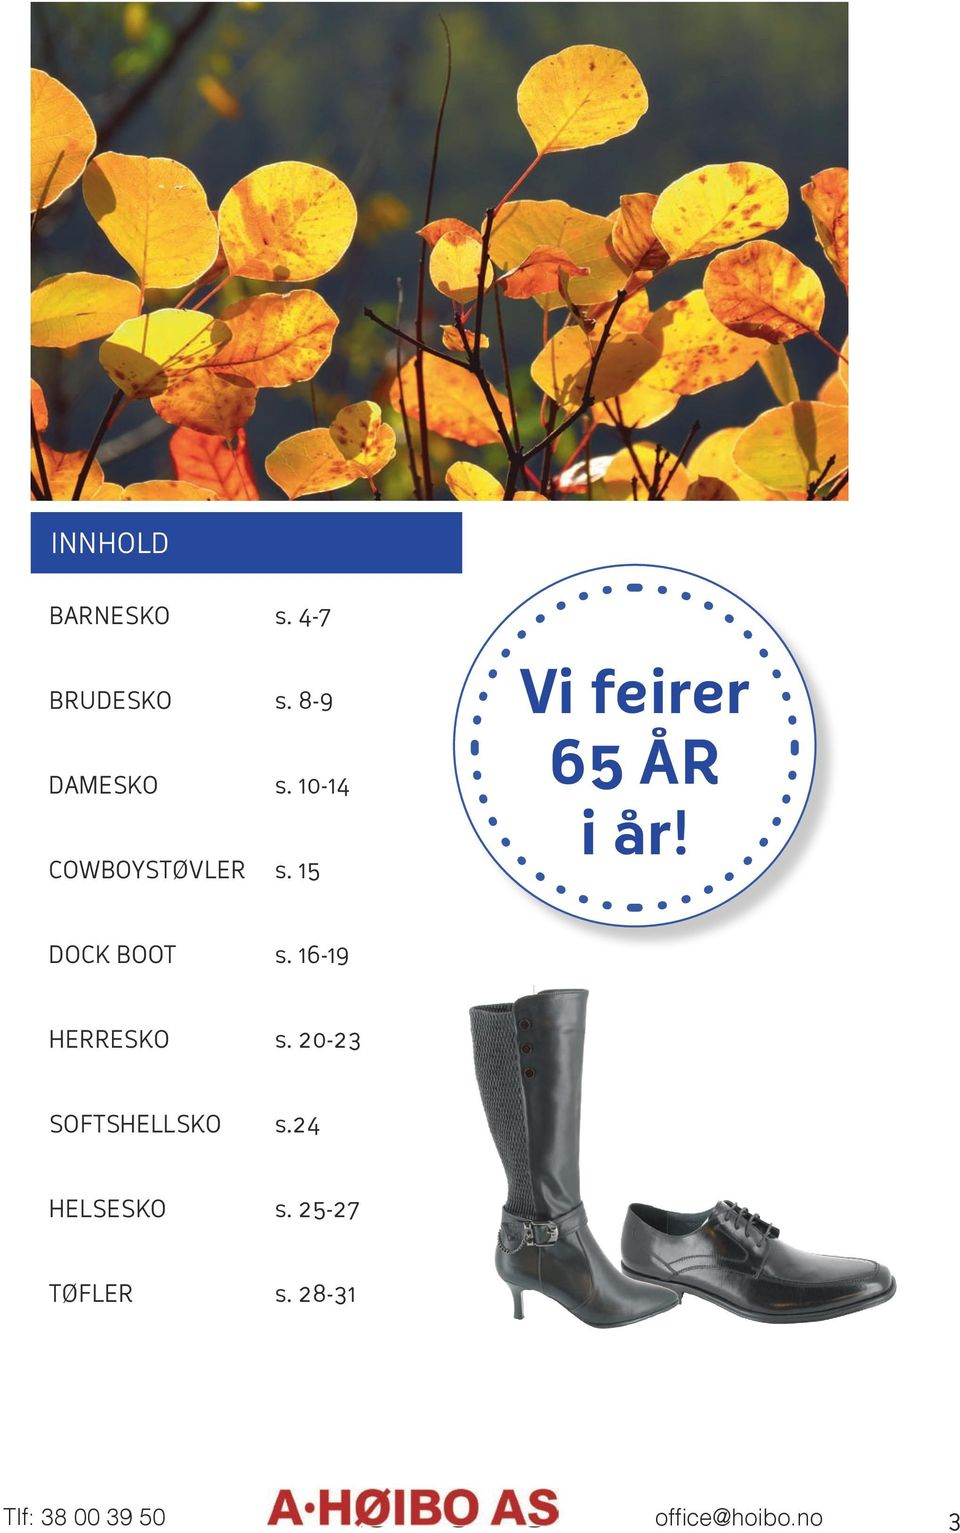 DOCK BOOT s. 16-19 HERRESKO s. 20-23 SOFTSHELLSKO s.